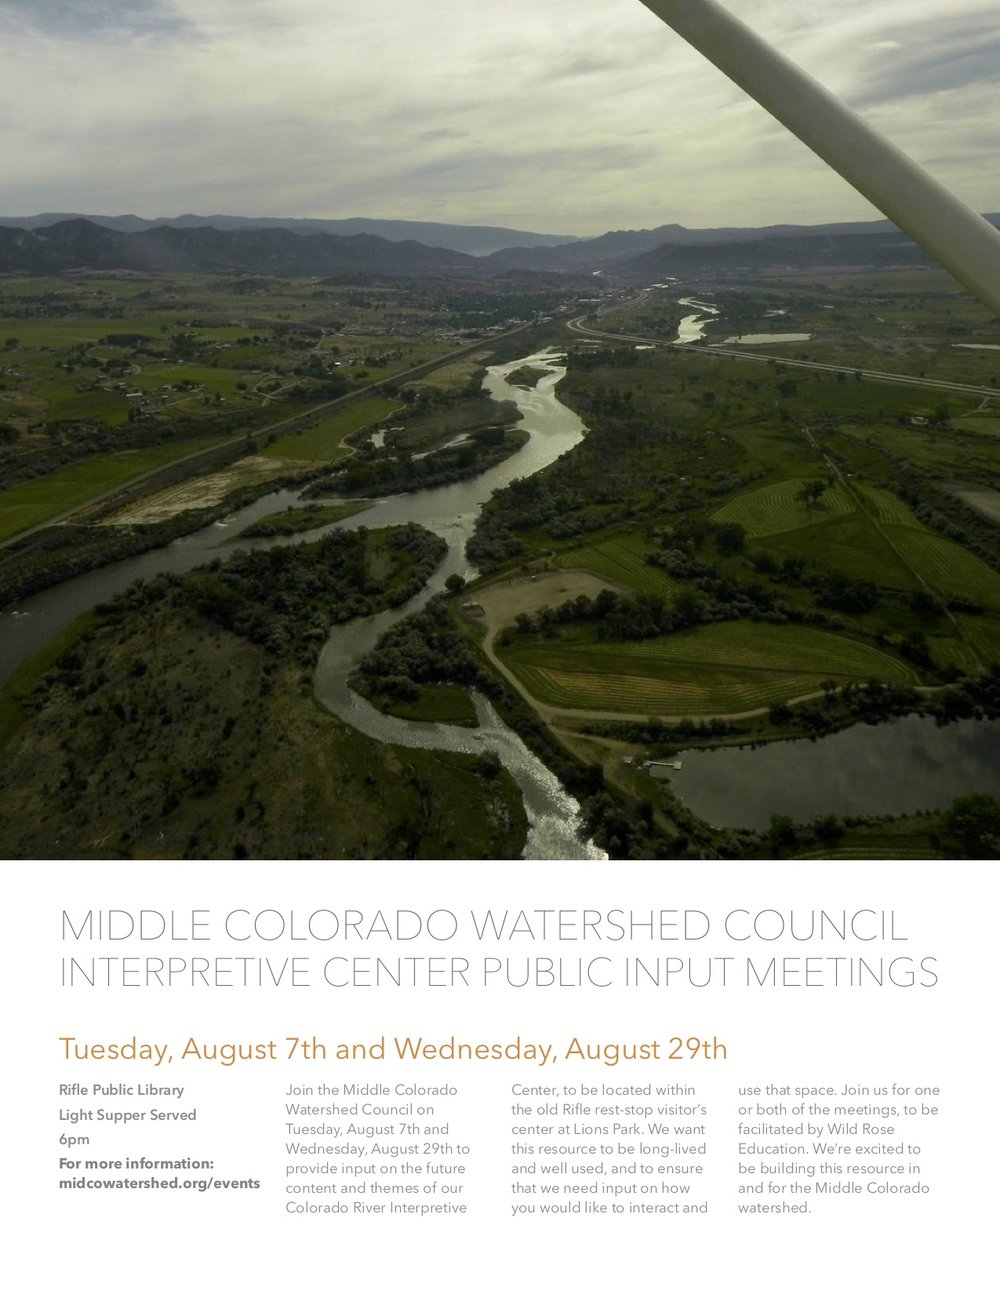 MCWC_Interpretive Center Input Meetings_Flyer.jpg